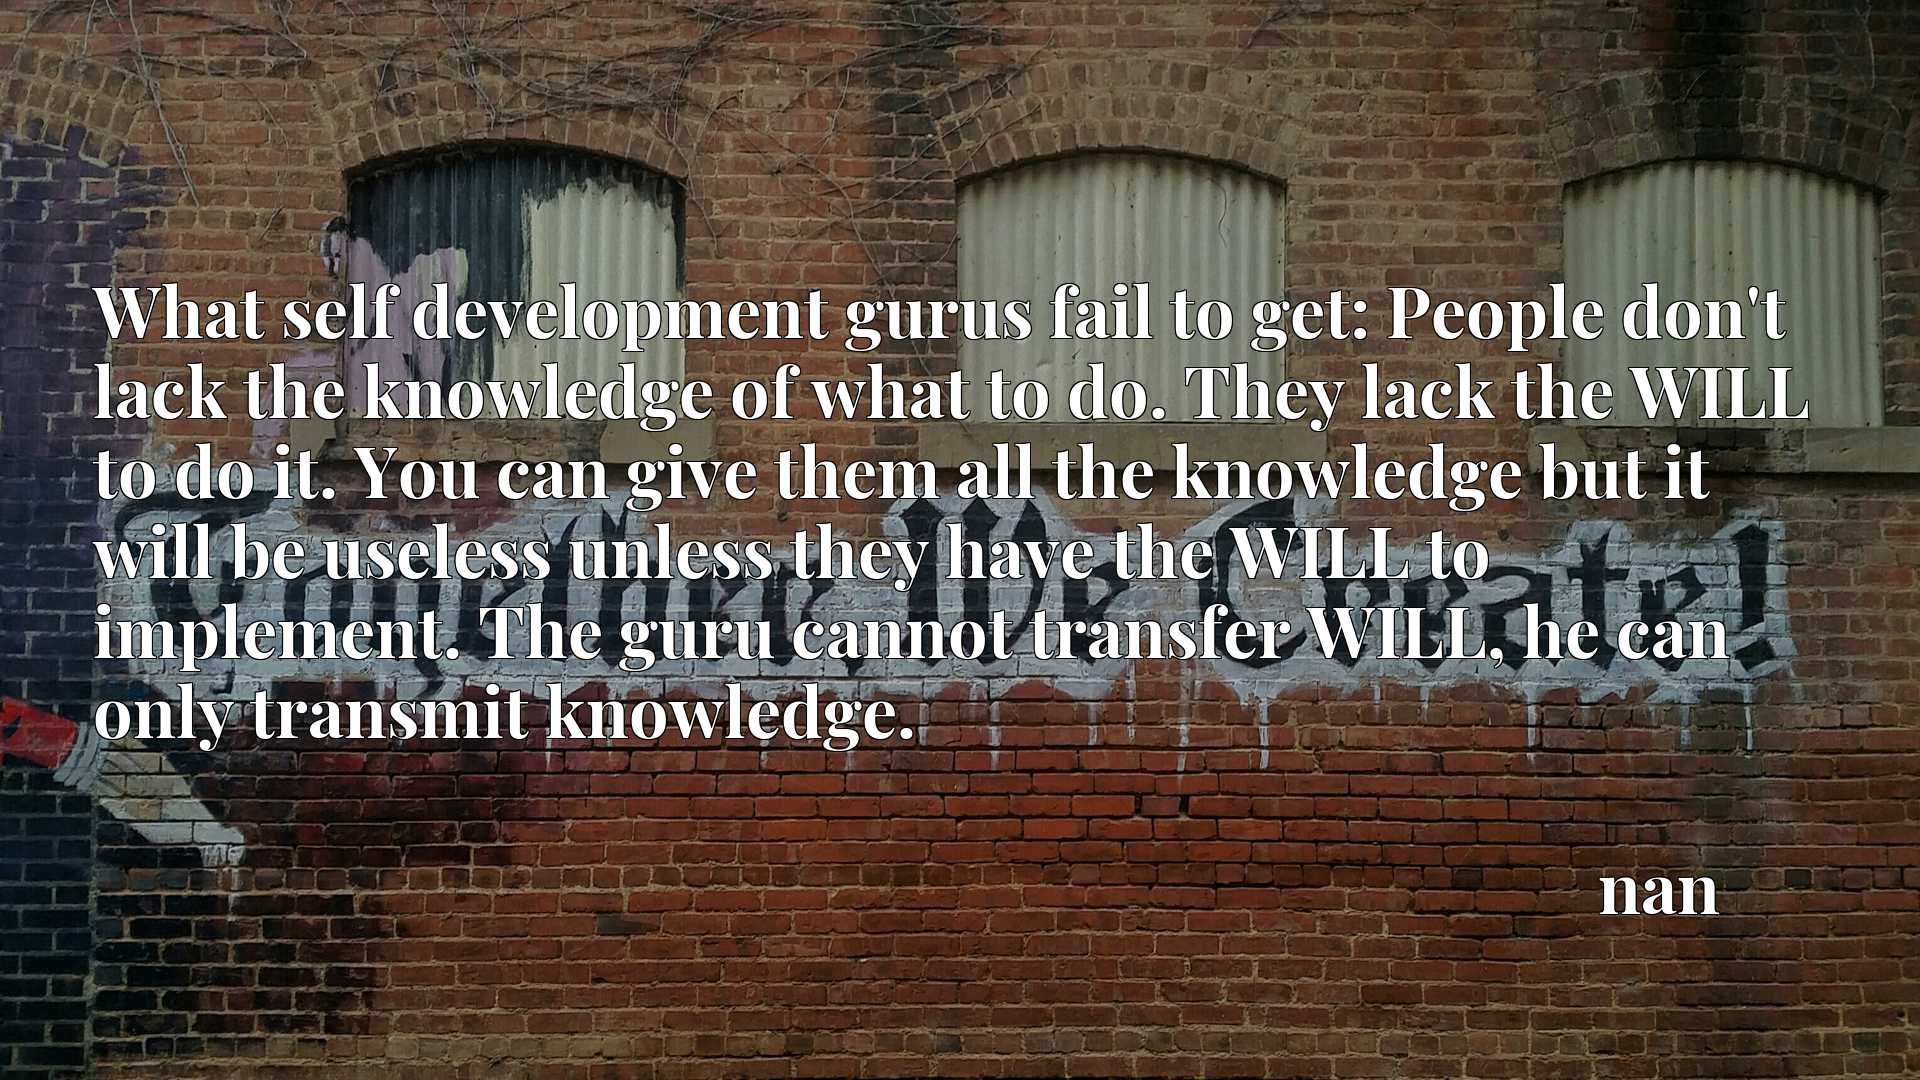 What self development gurus fail to get: People don't lack the knowledge of what to do. They lack the WILL to do it. You can give them all the knowledge but it will be useless unless they have the WILL to implement. The guru cannot transfer WILL, he can only transmit knowledge.